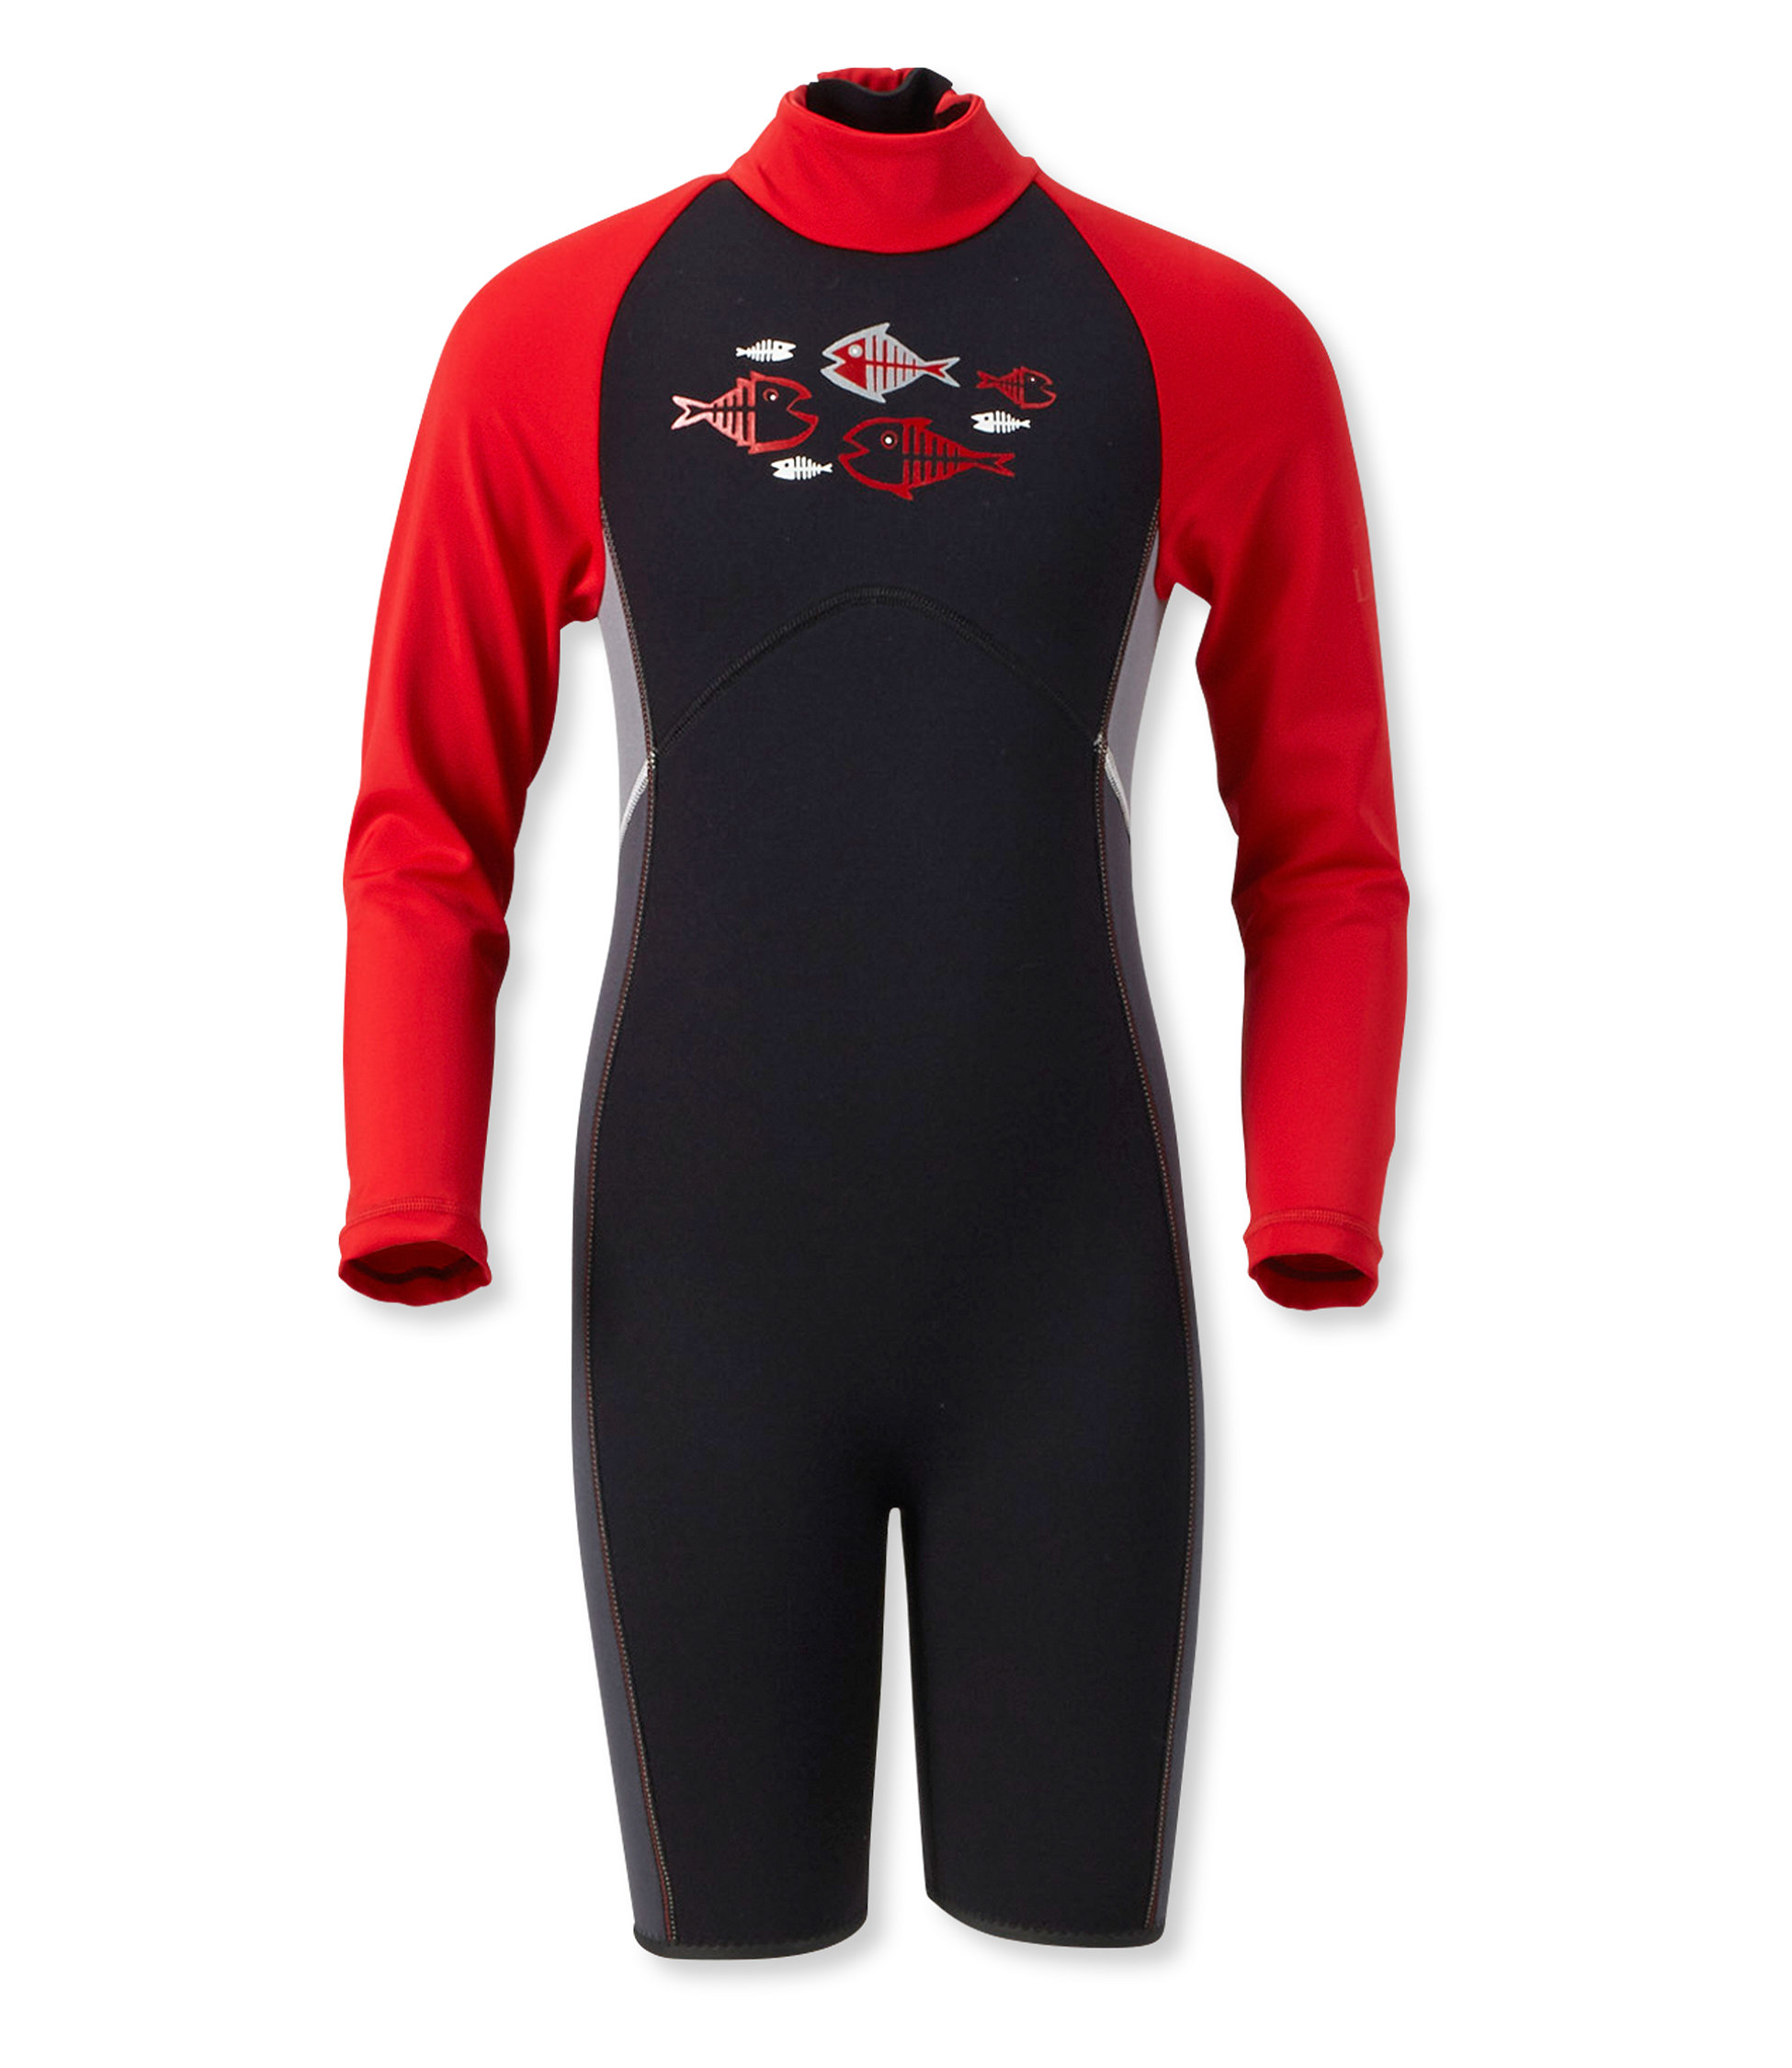 L.L.Bean Superstretch Titanium Wet Suit